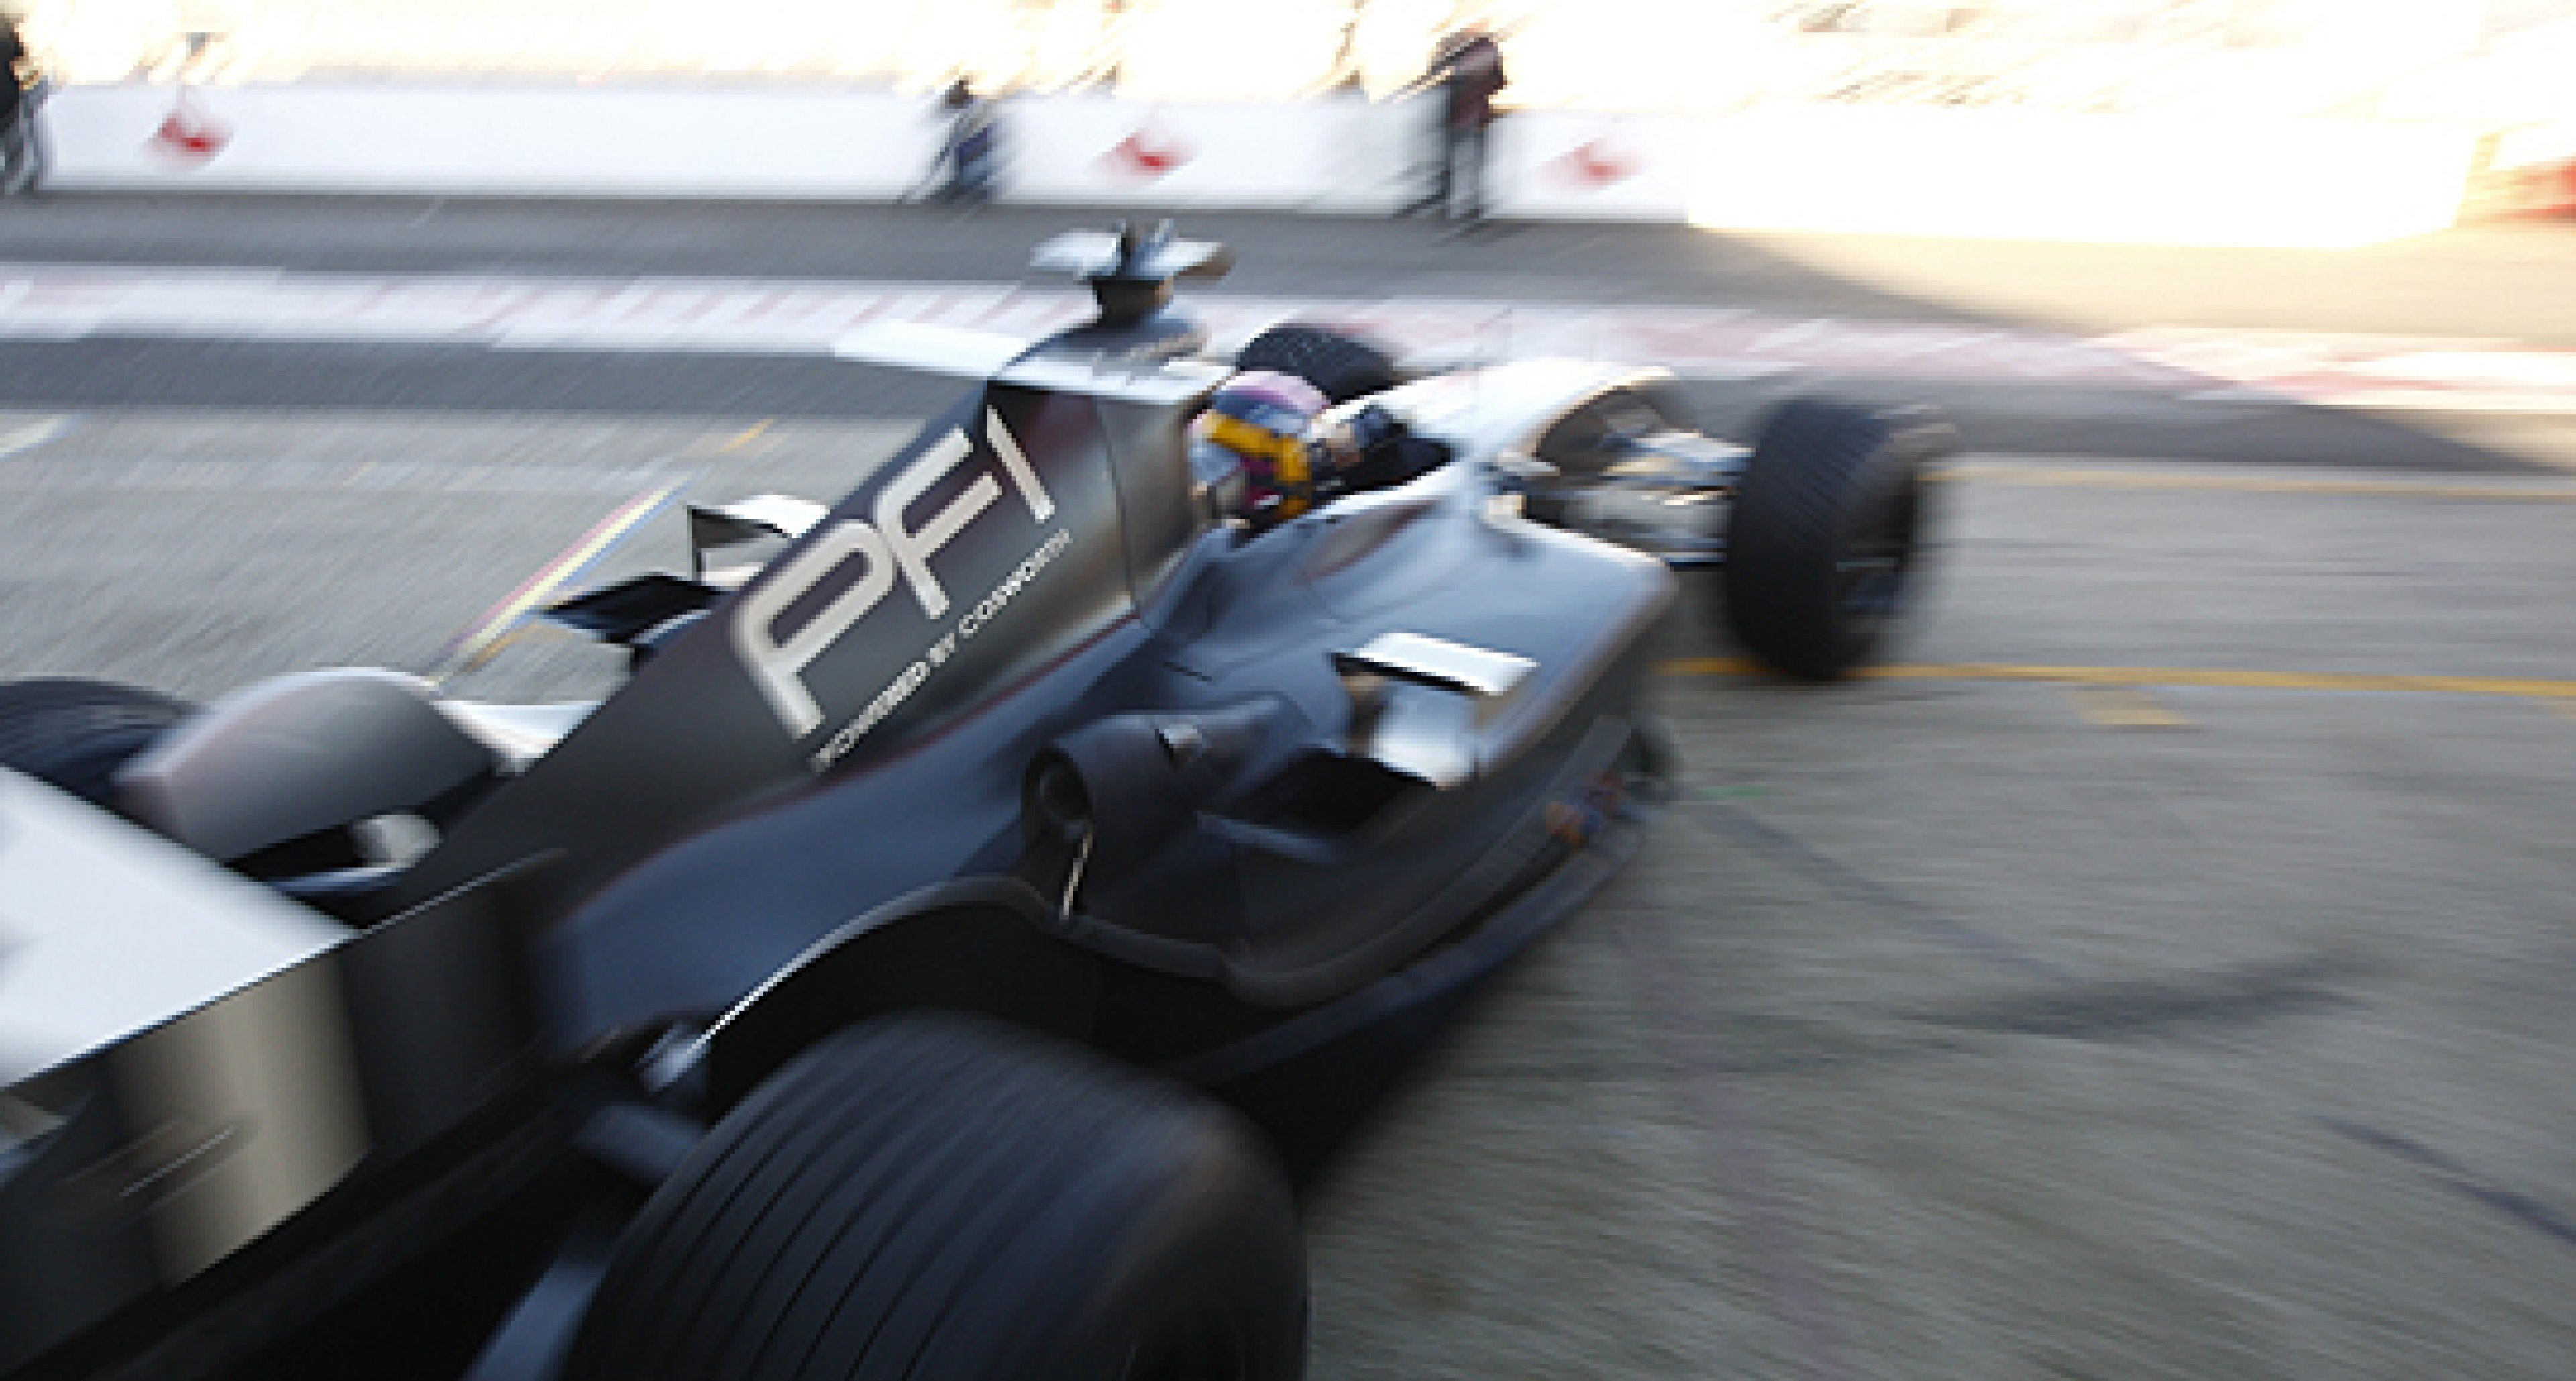 F1 Car Ownership: Now a Step Closer